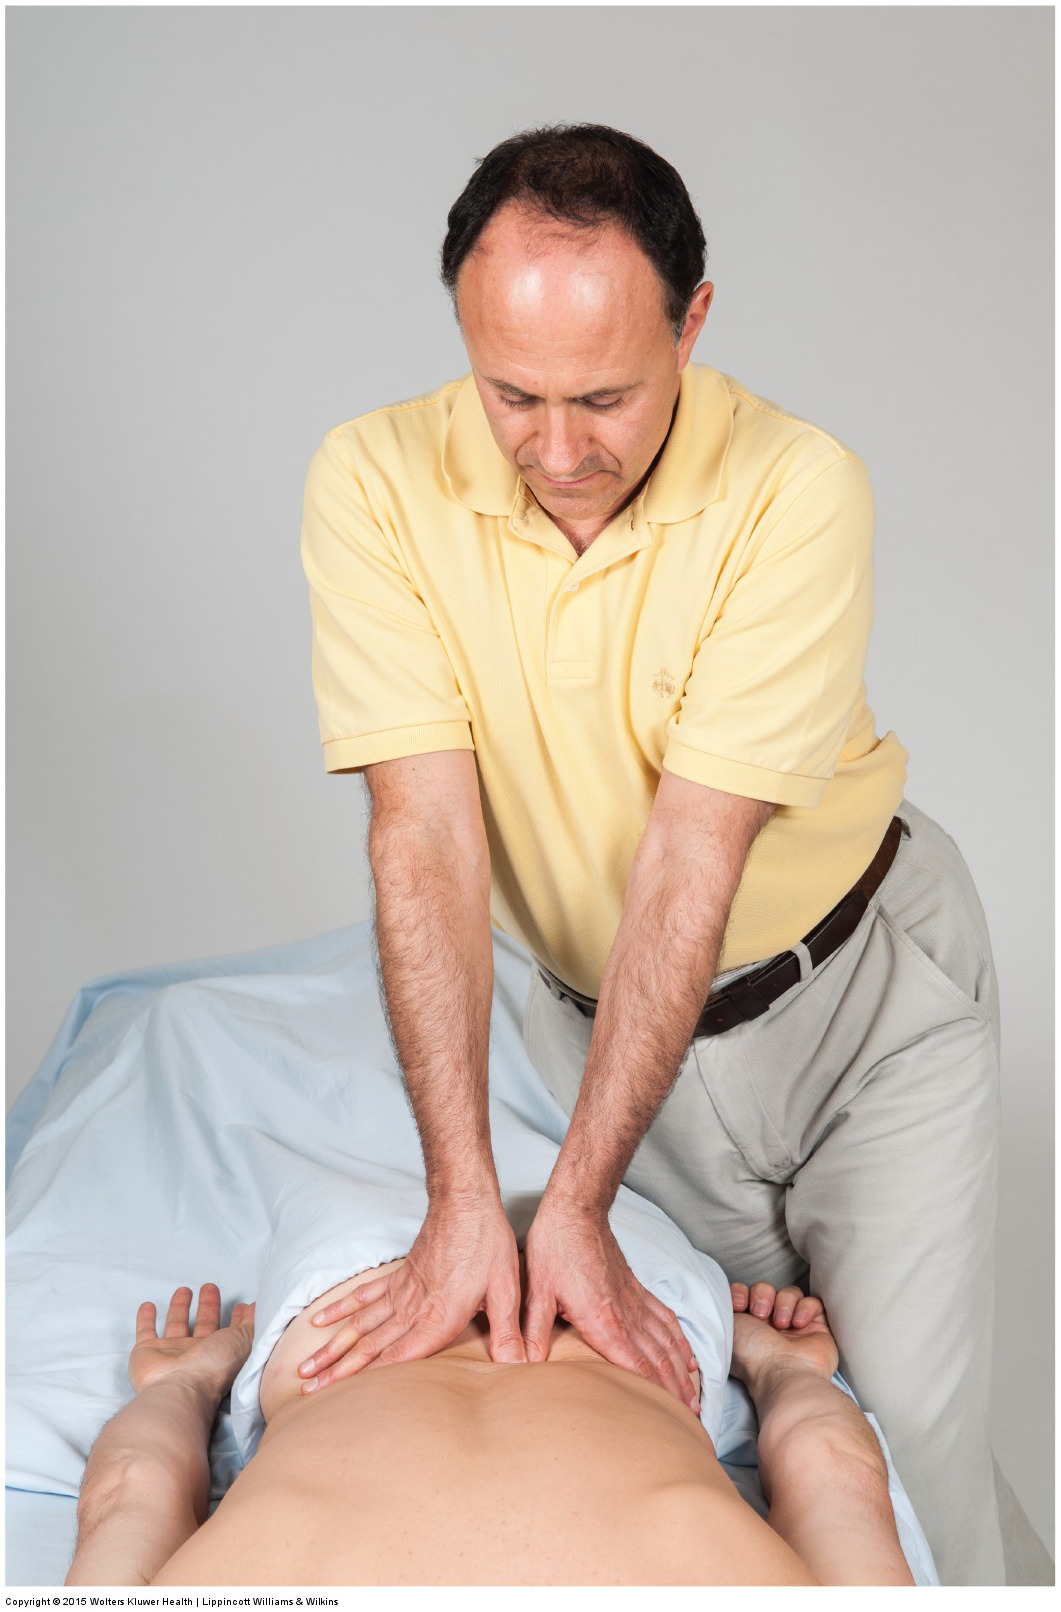 Using the core to generate deep pressure massage into the low back with braced thumb contact. Permission: Joseph E. Muscolino. Manual Therapy for the Low Back and Pelvis (2015).